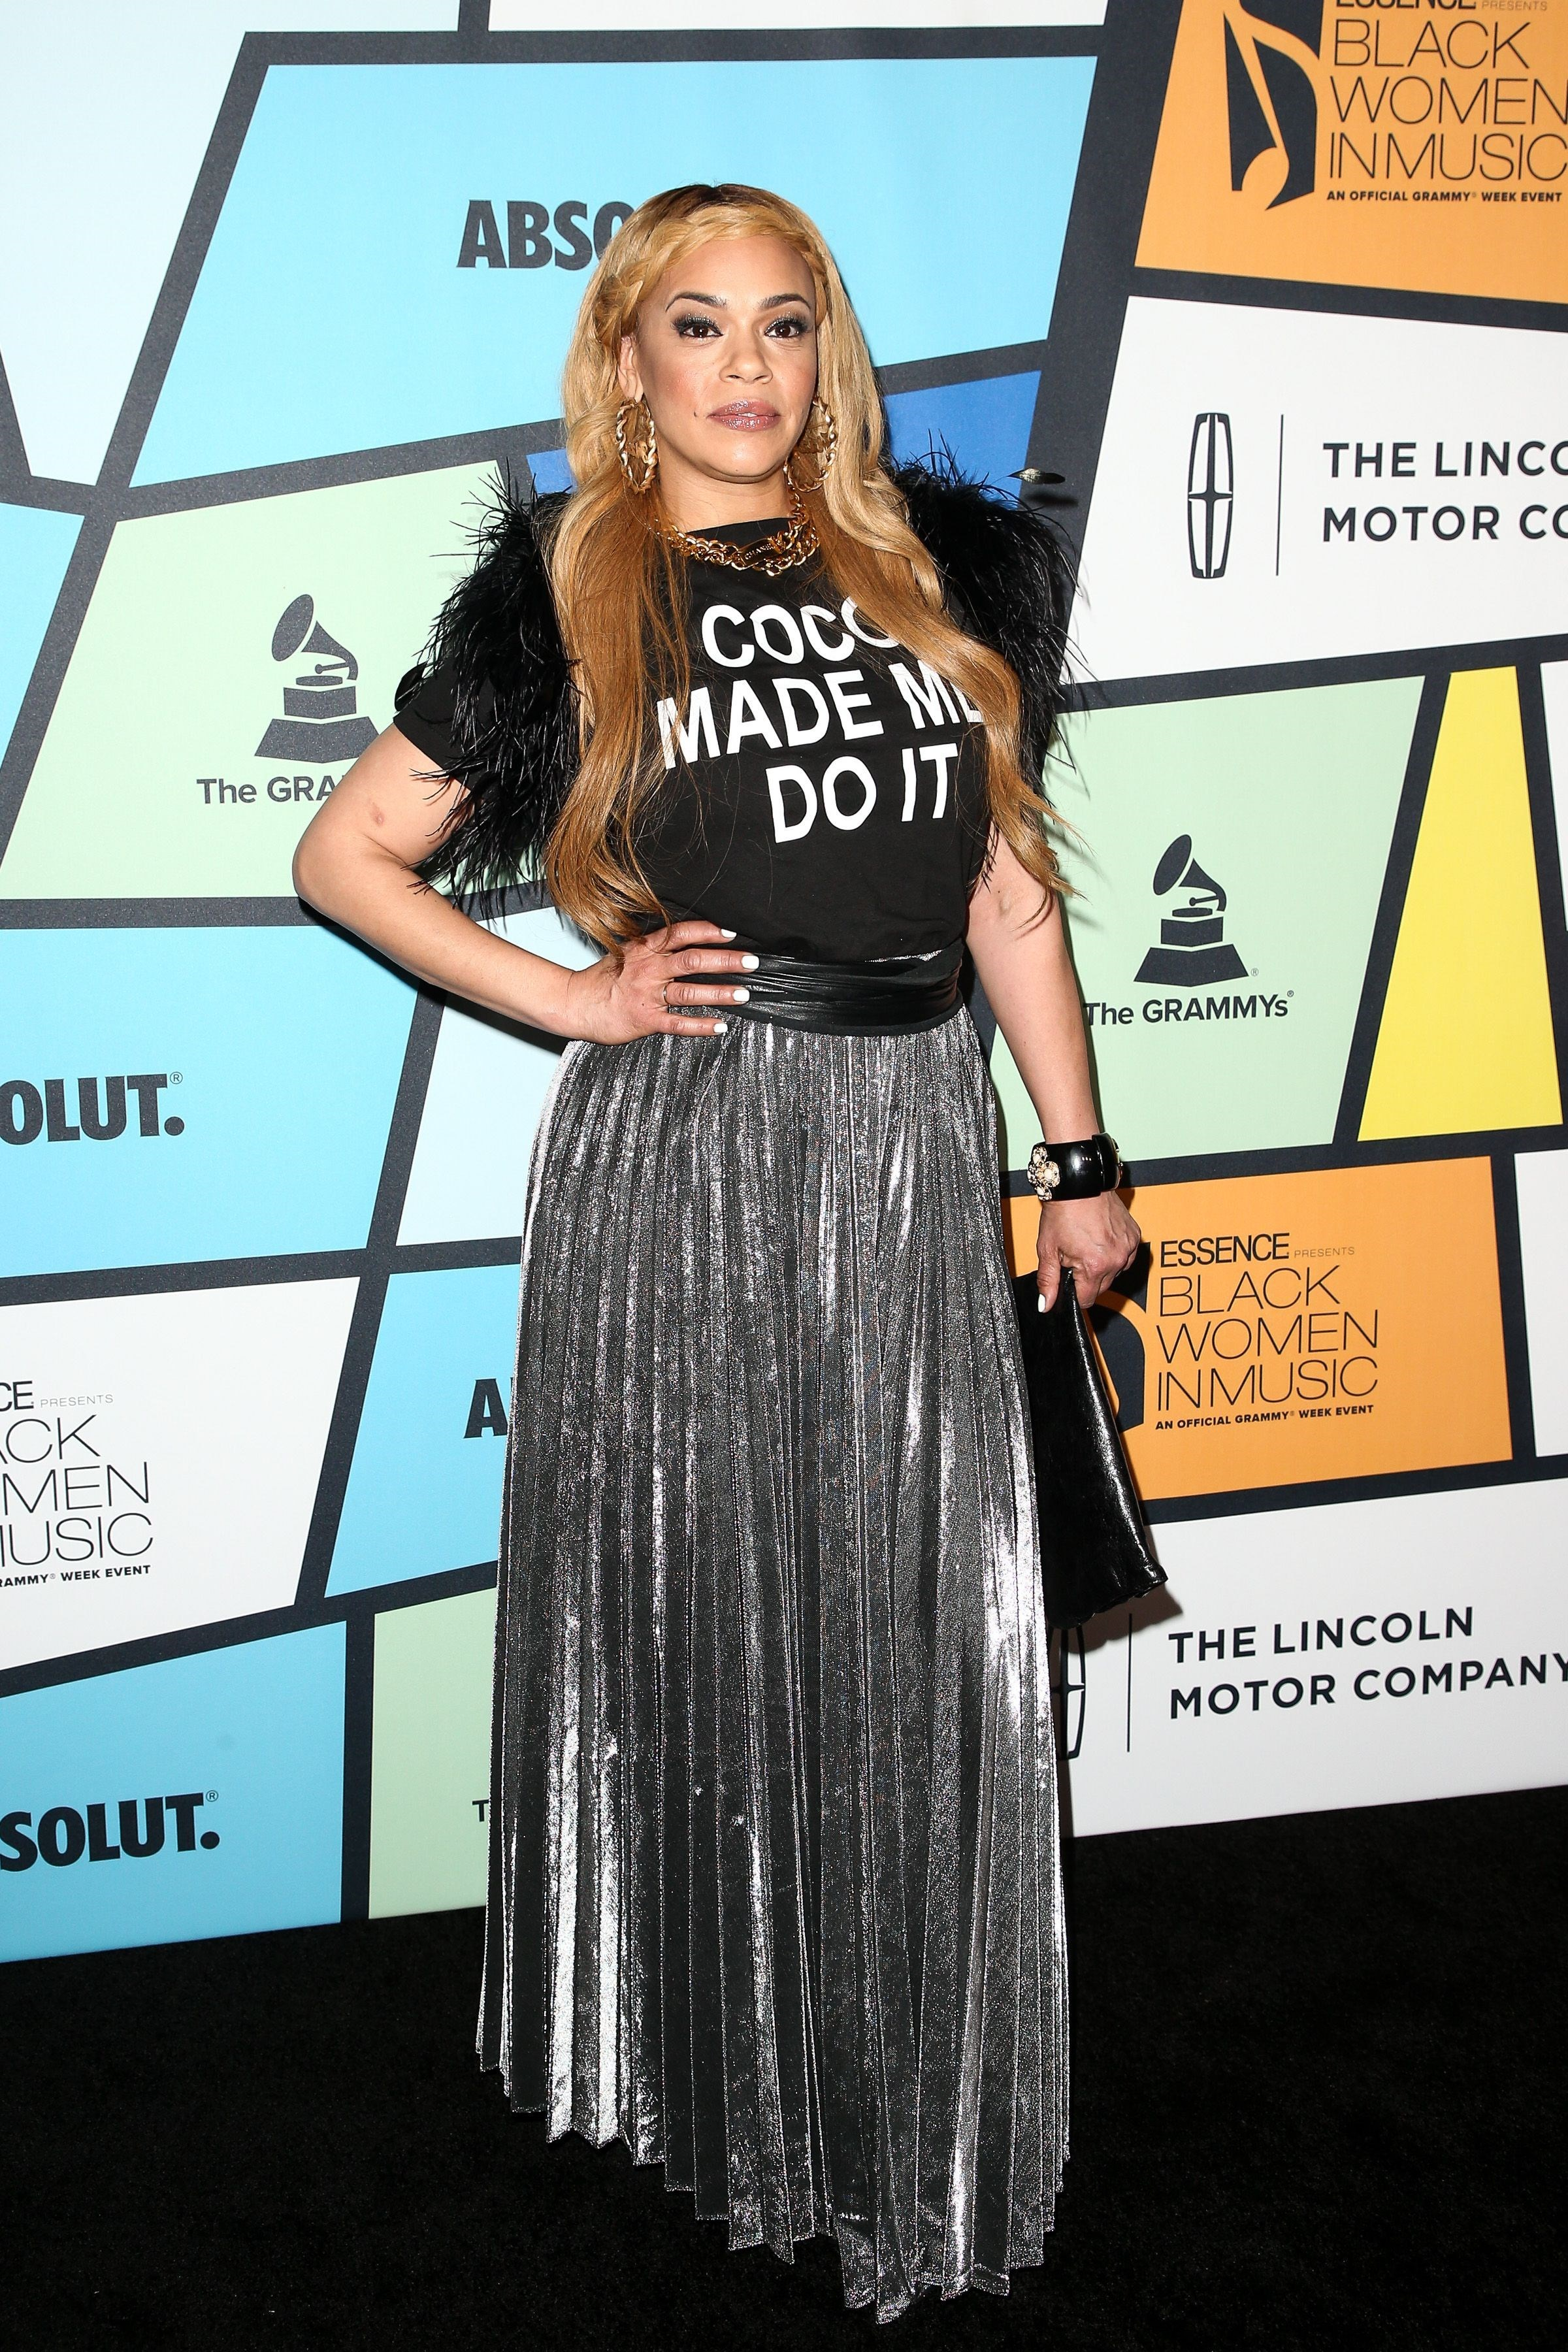 Faith Evans attends the Essence Black Women in Music in Los Angeles on Feb. 9, 2017.